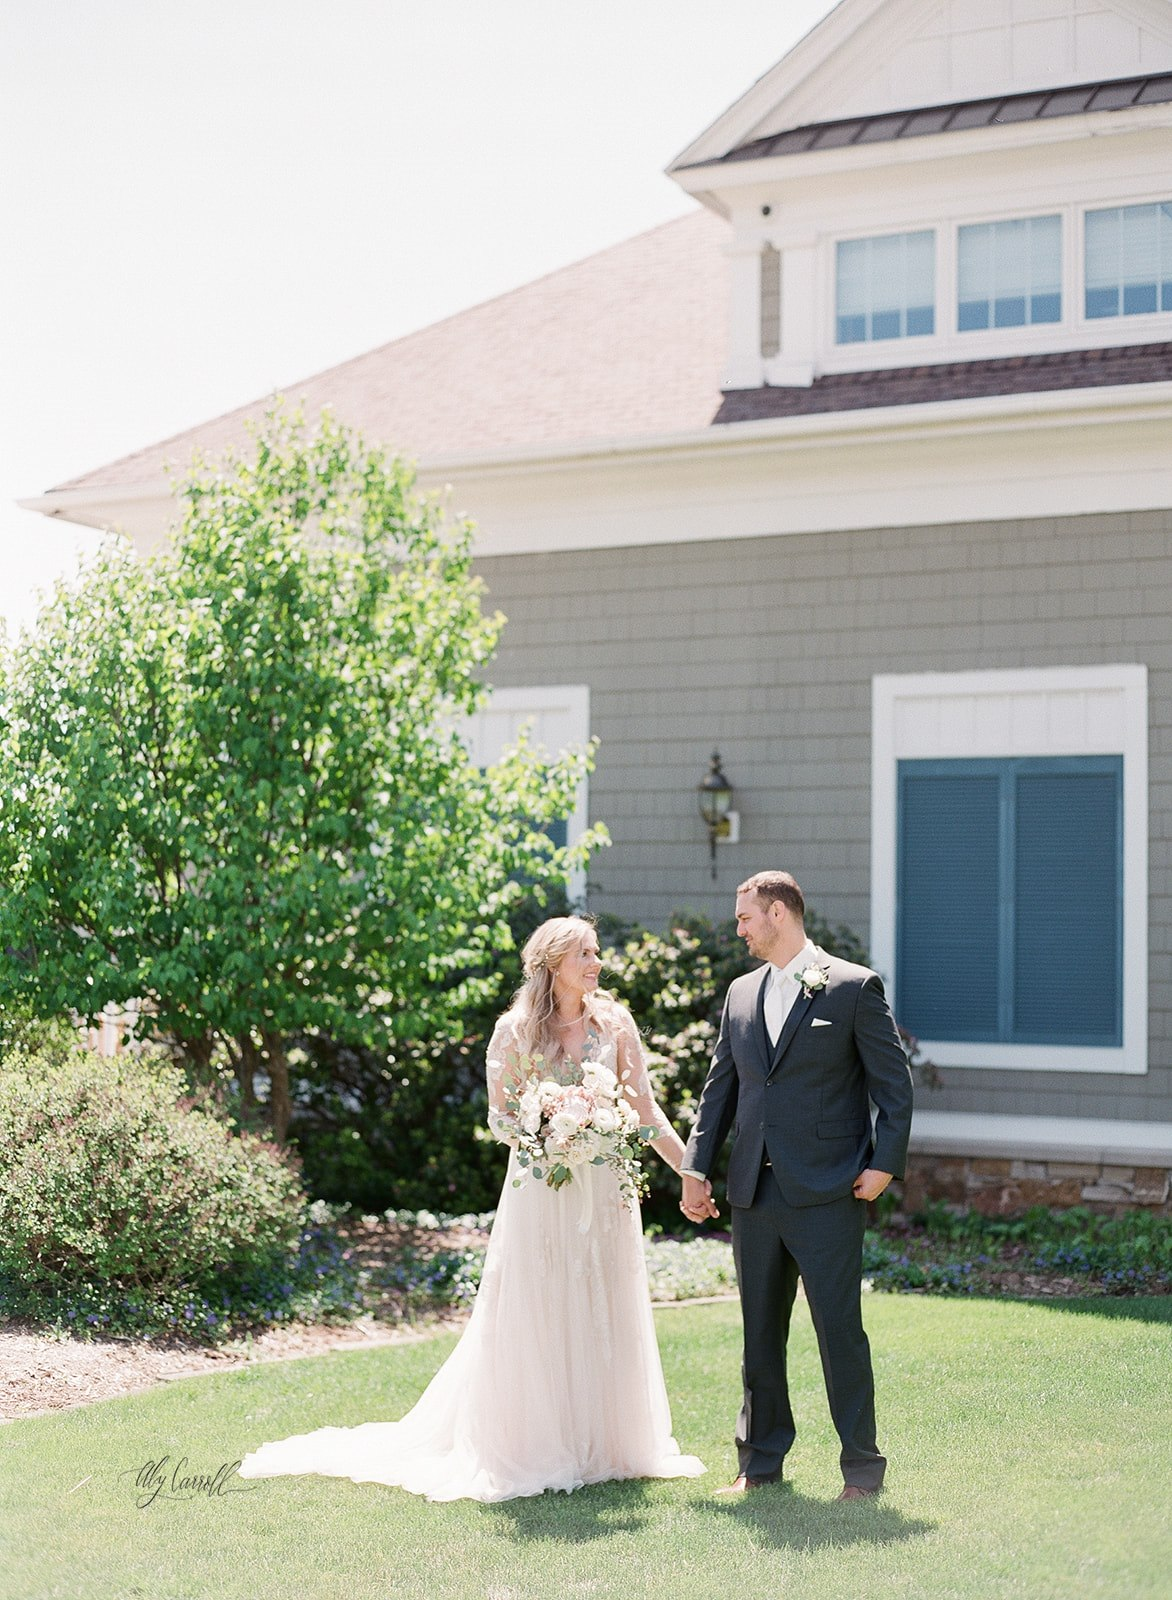 Sarah___Jake___Wedding_Film-123.jpg